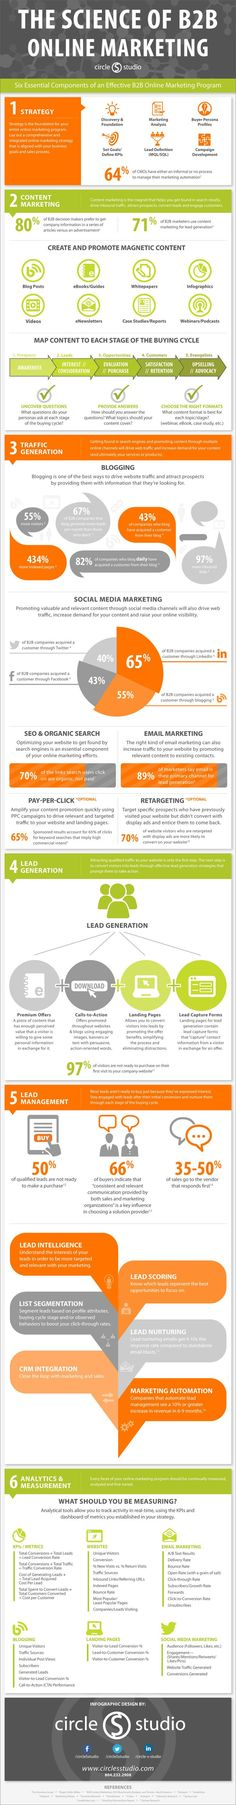 The Science of B2B online marketing. #infographic